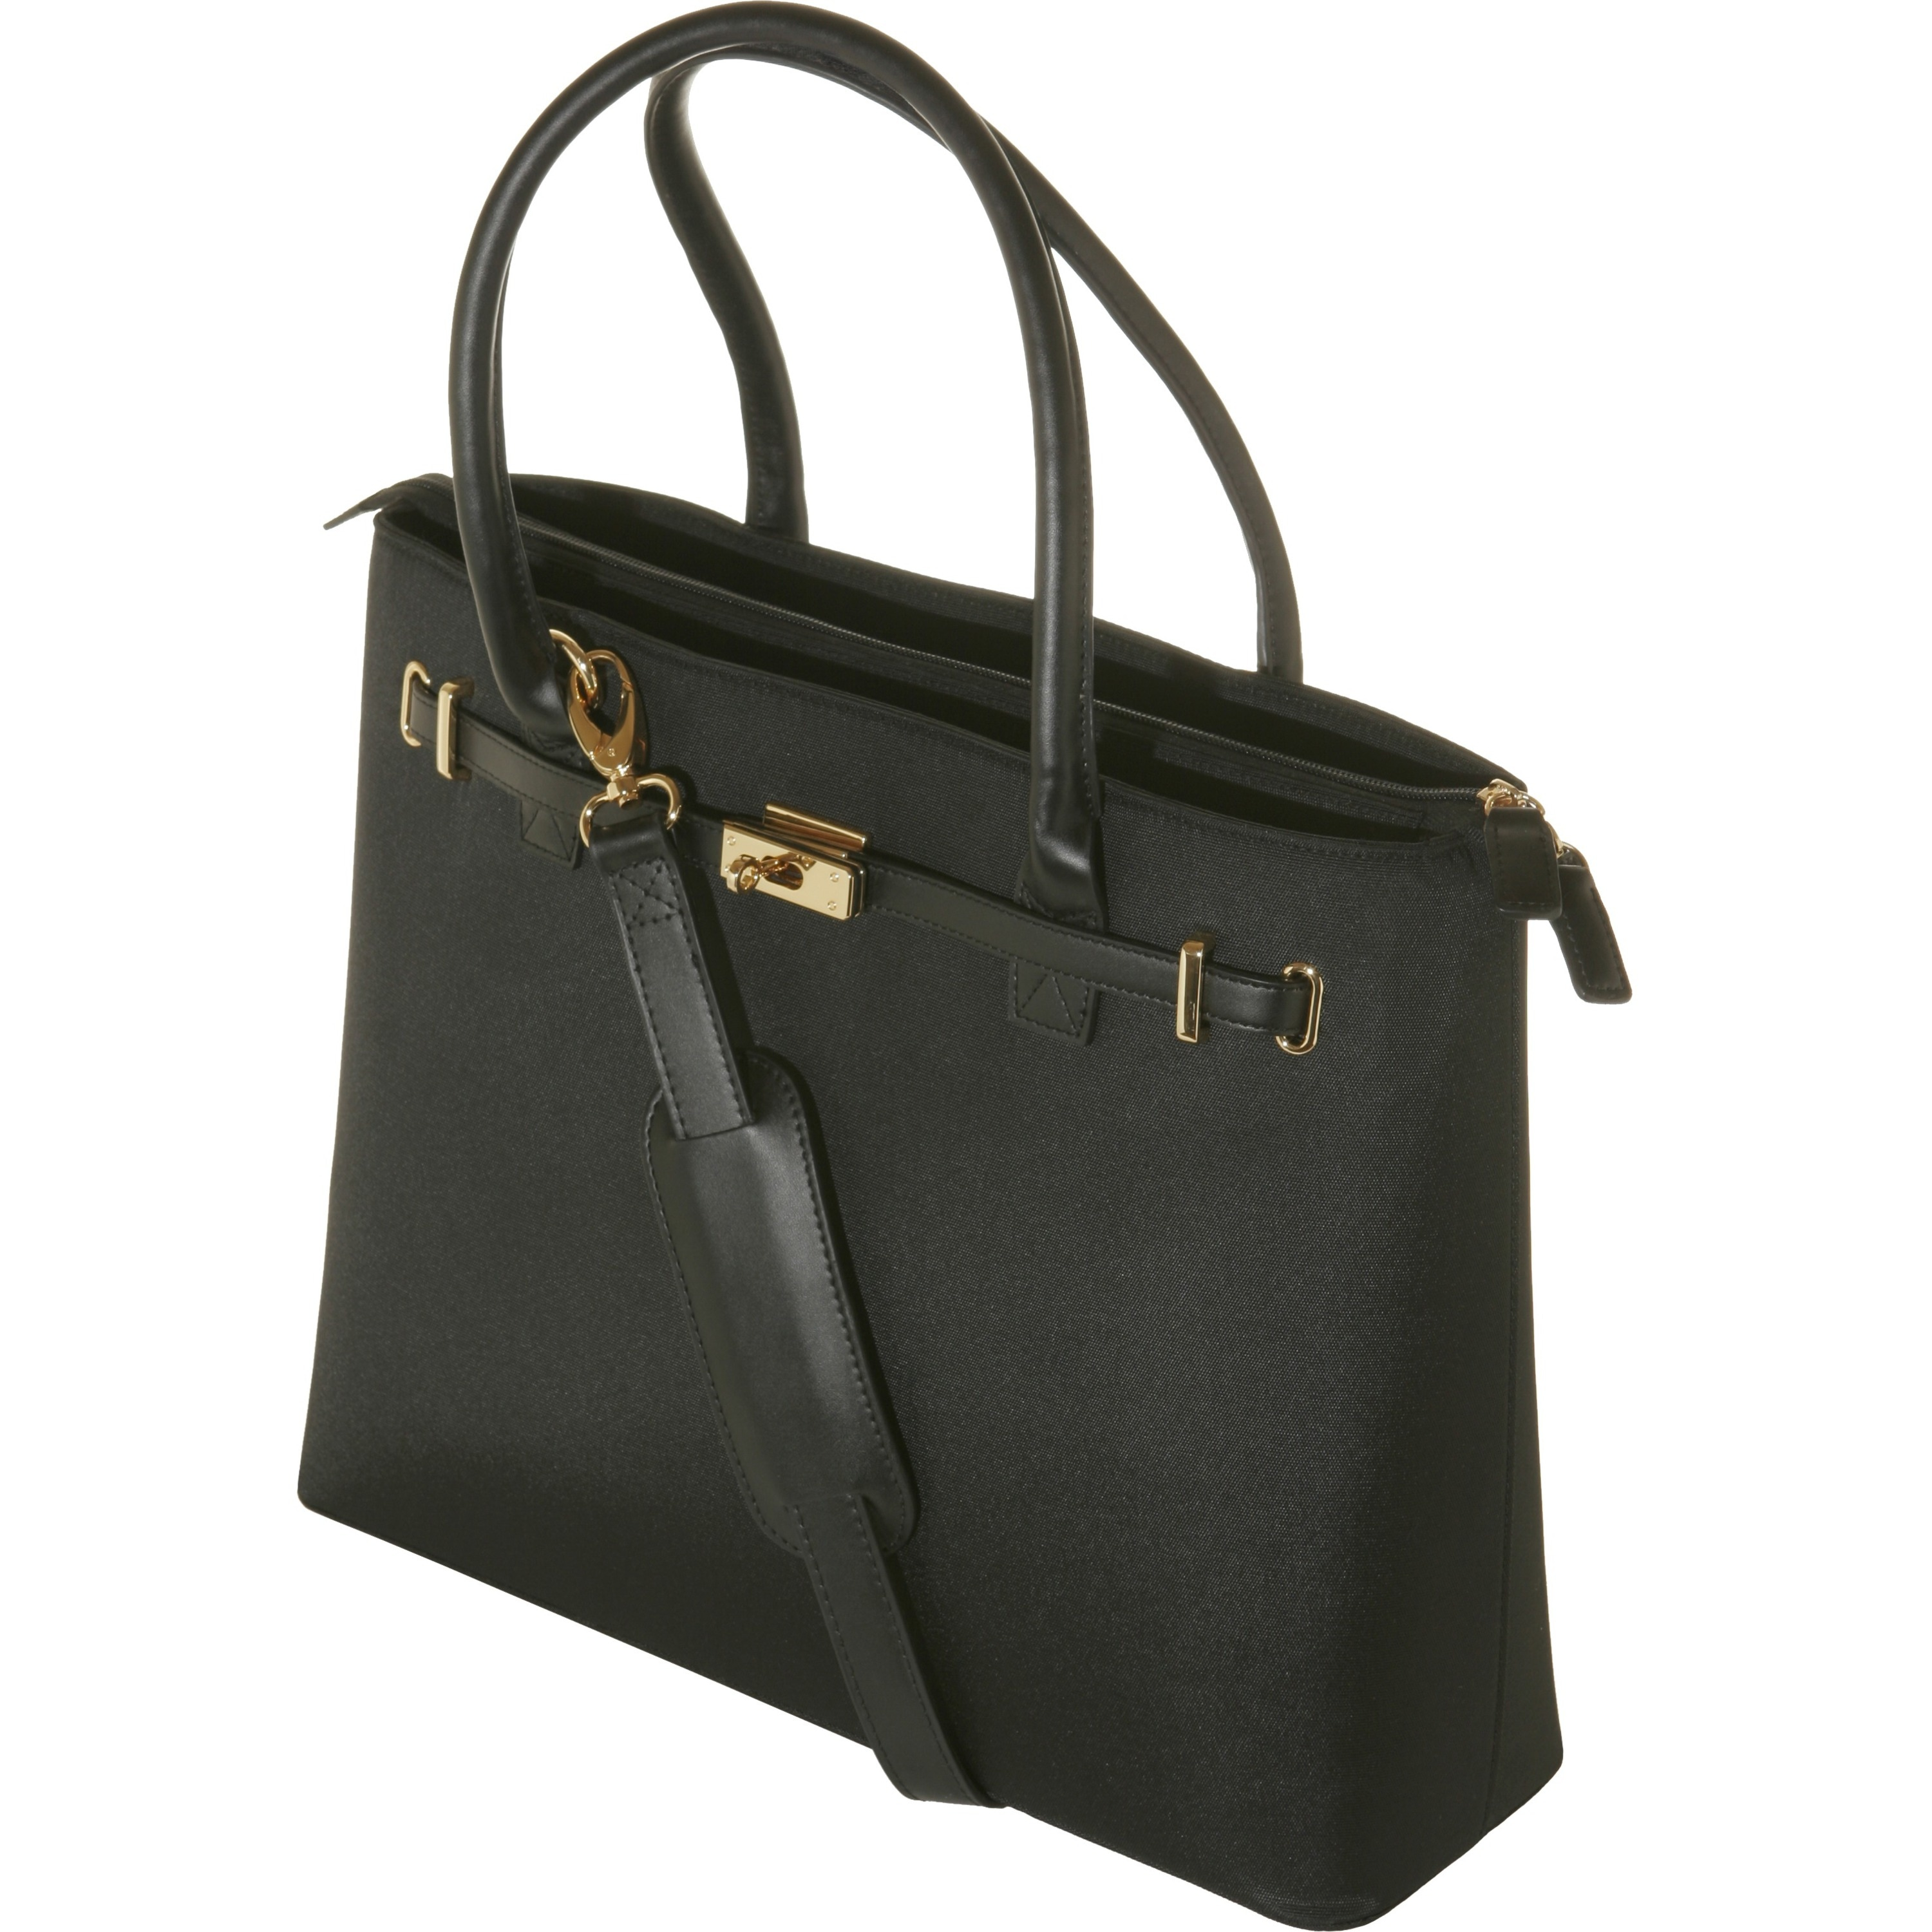 """WIB Thoroughbred WIB-EURO1 Carrying Case for 15.6"""" Notebook - Black"""